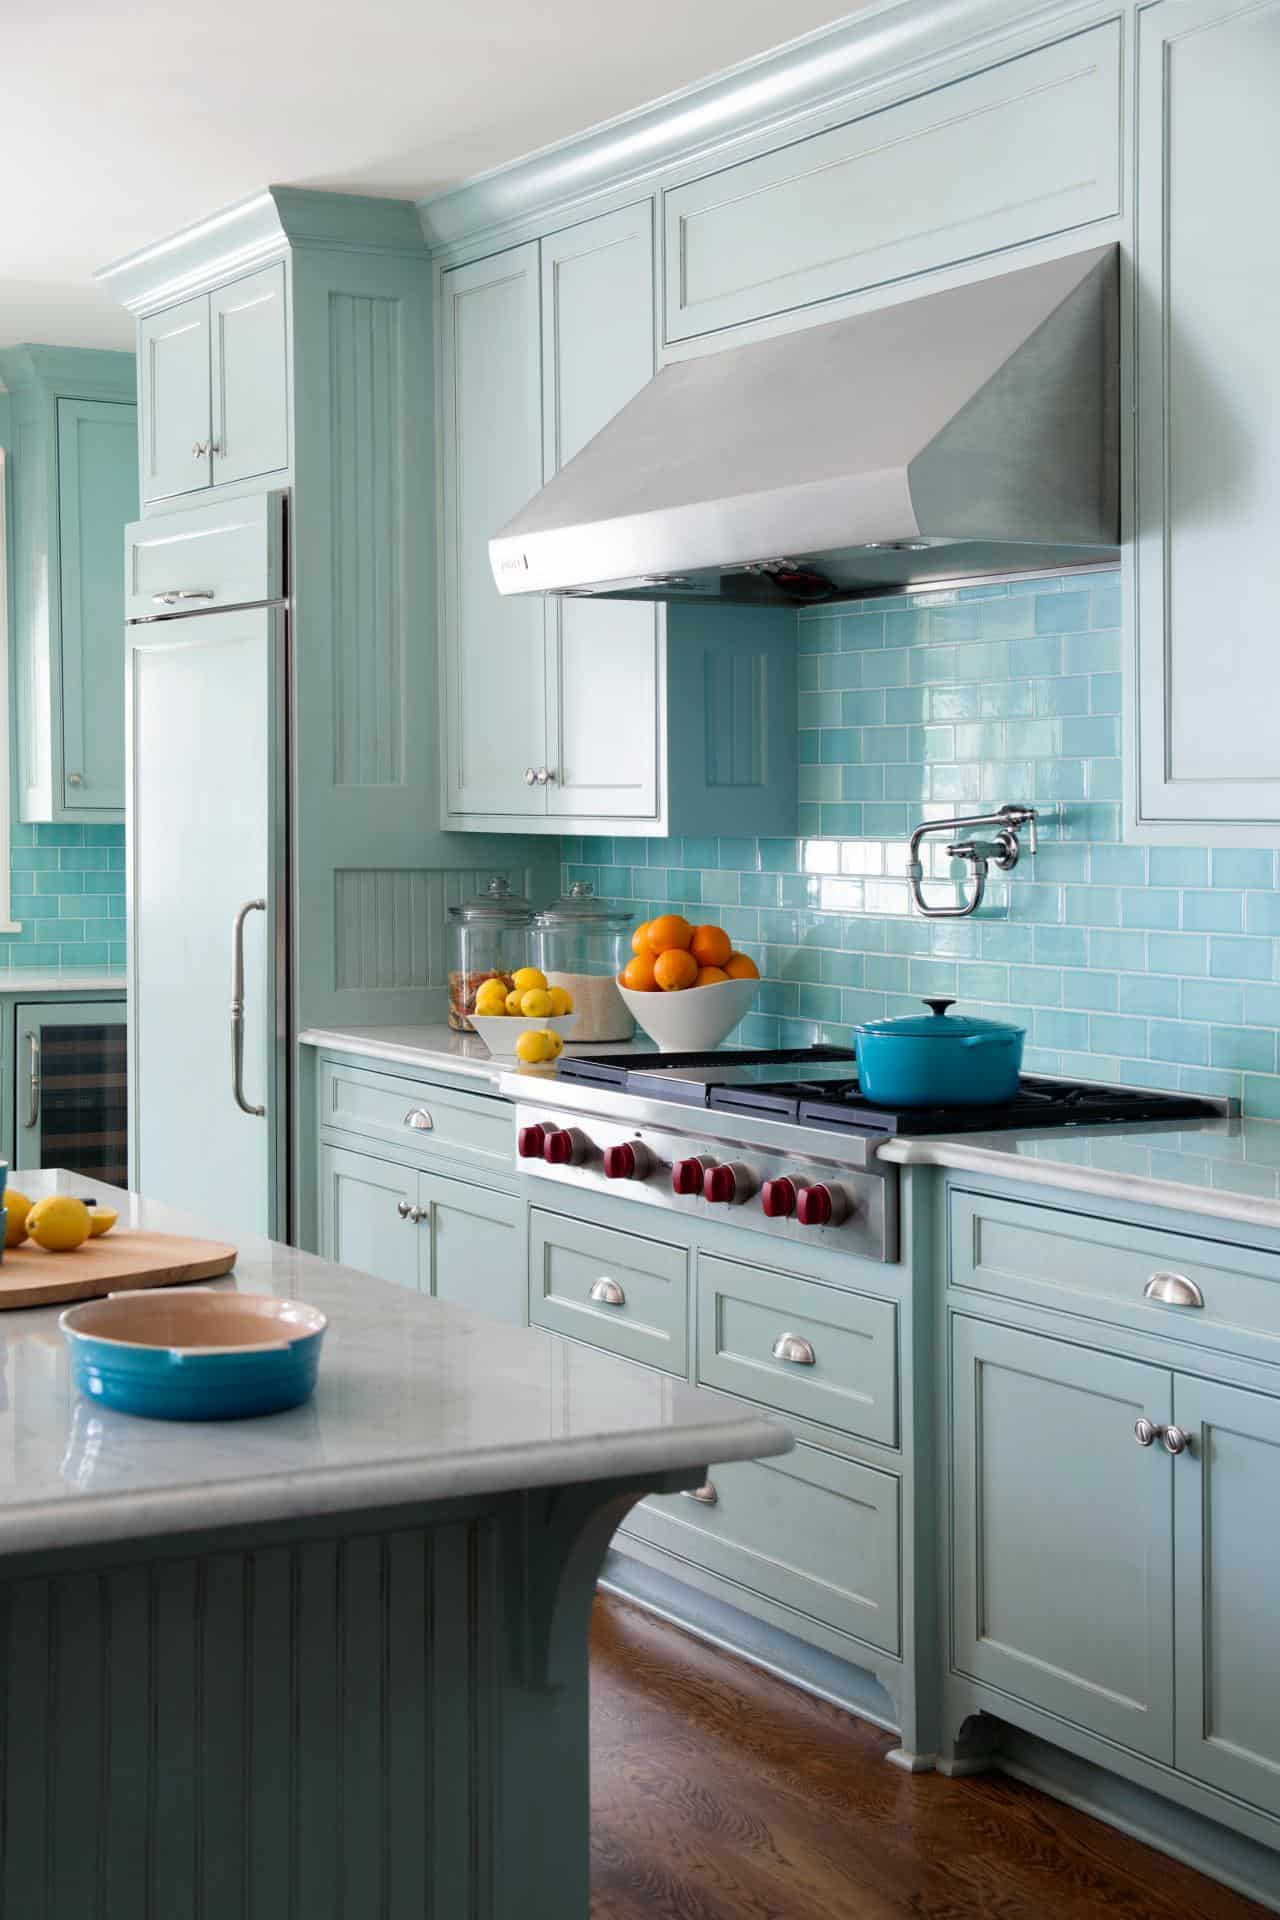 Retro Kitchen Ideas To Upgrade Your Current Kitchen